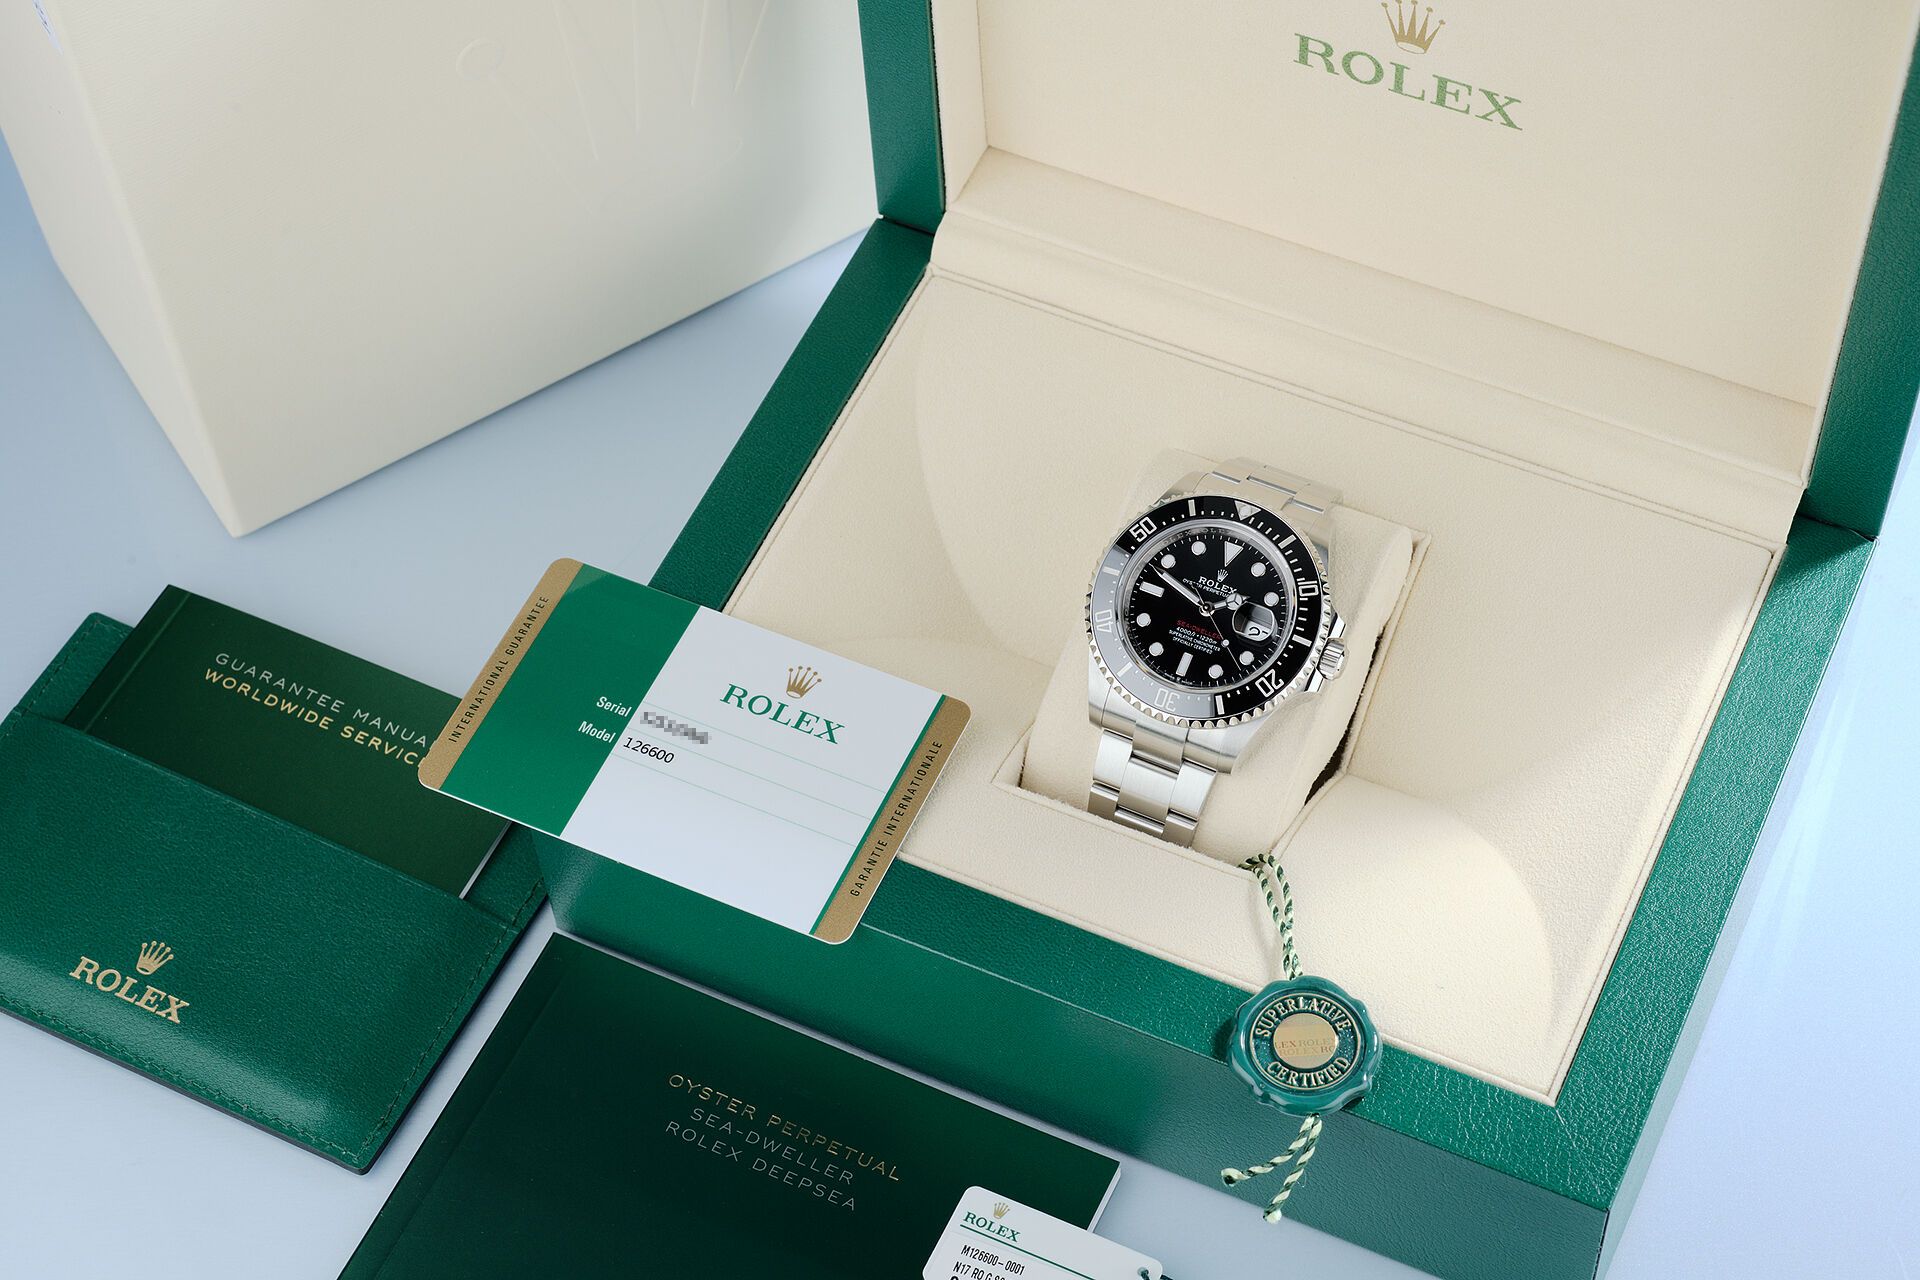 ref 126600 | 5 Year Rolex Warranty | Rolex Sea-Dweller